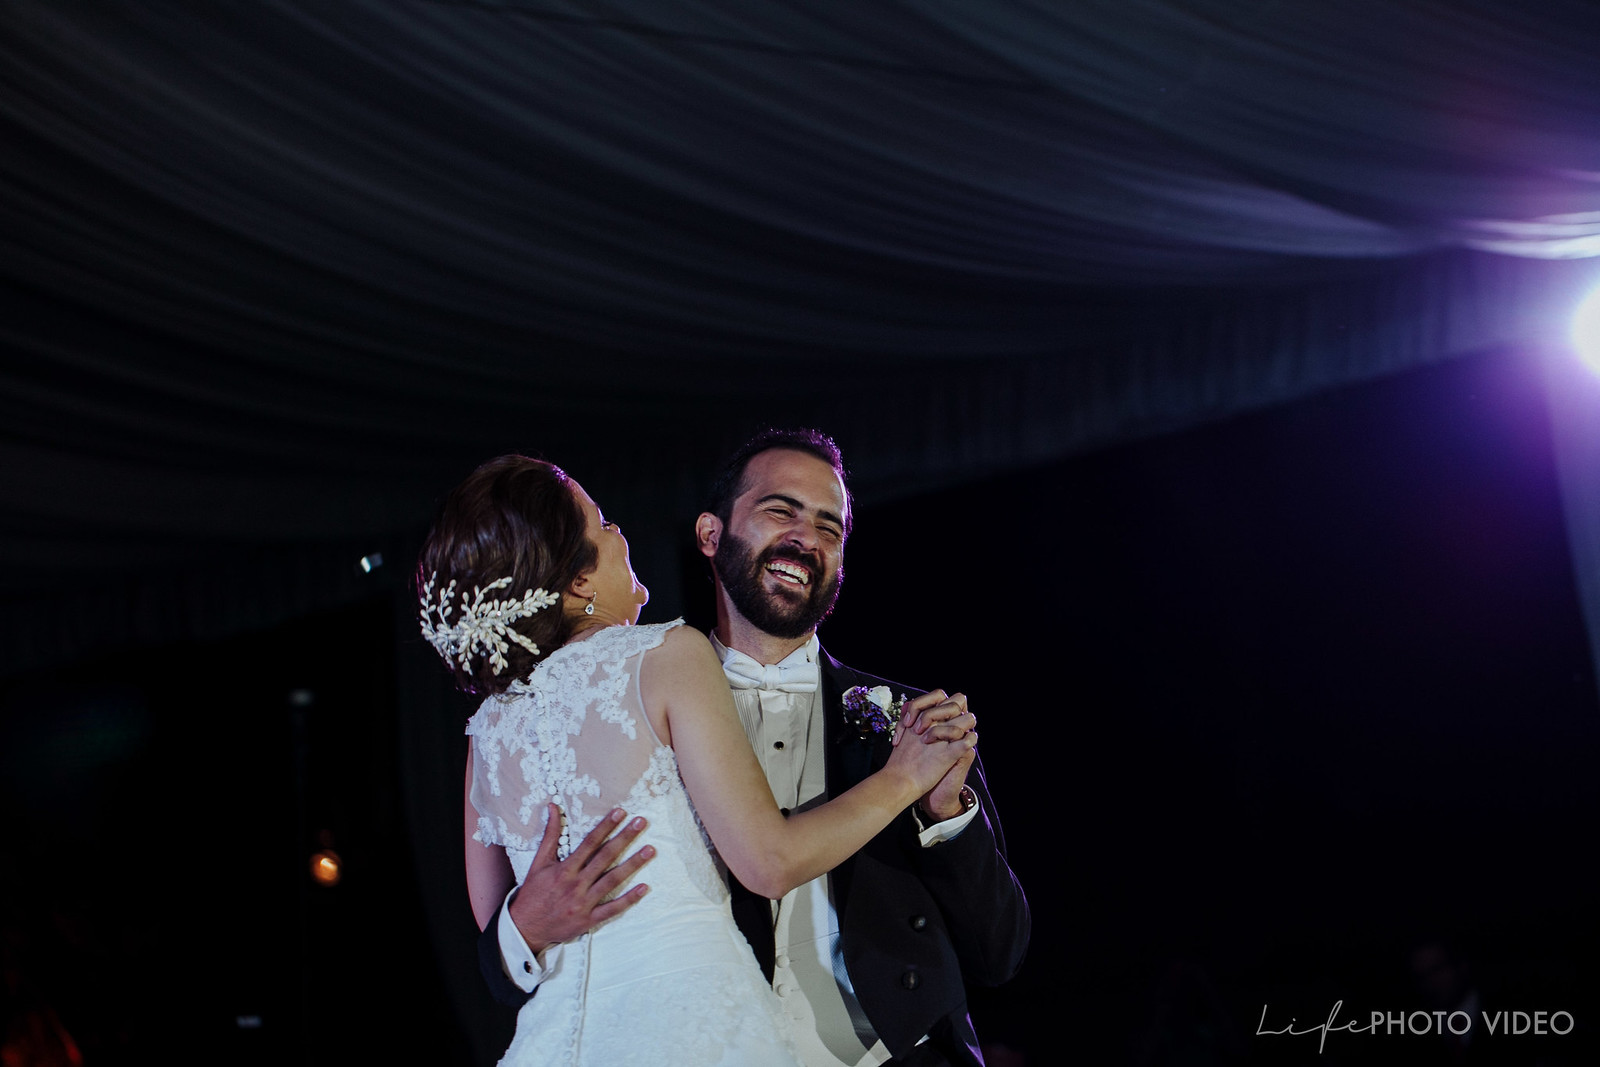 Boda_Guanajuato_Mexico_Wedding_LifePhotoVideo